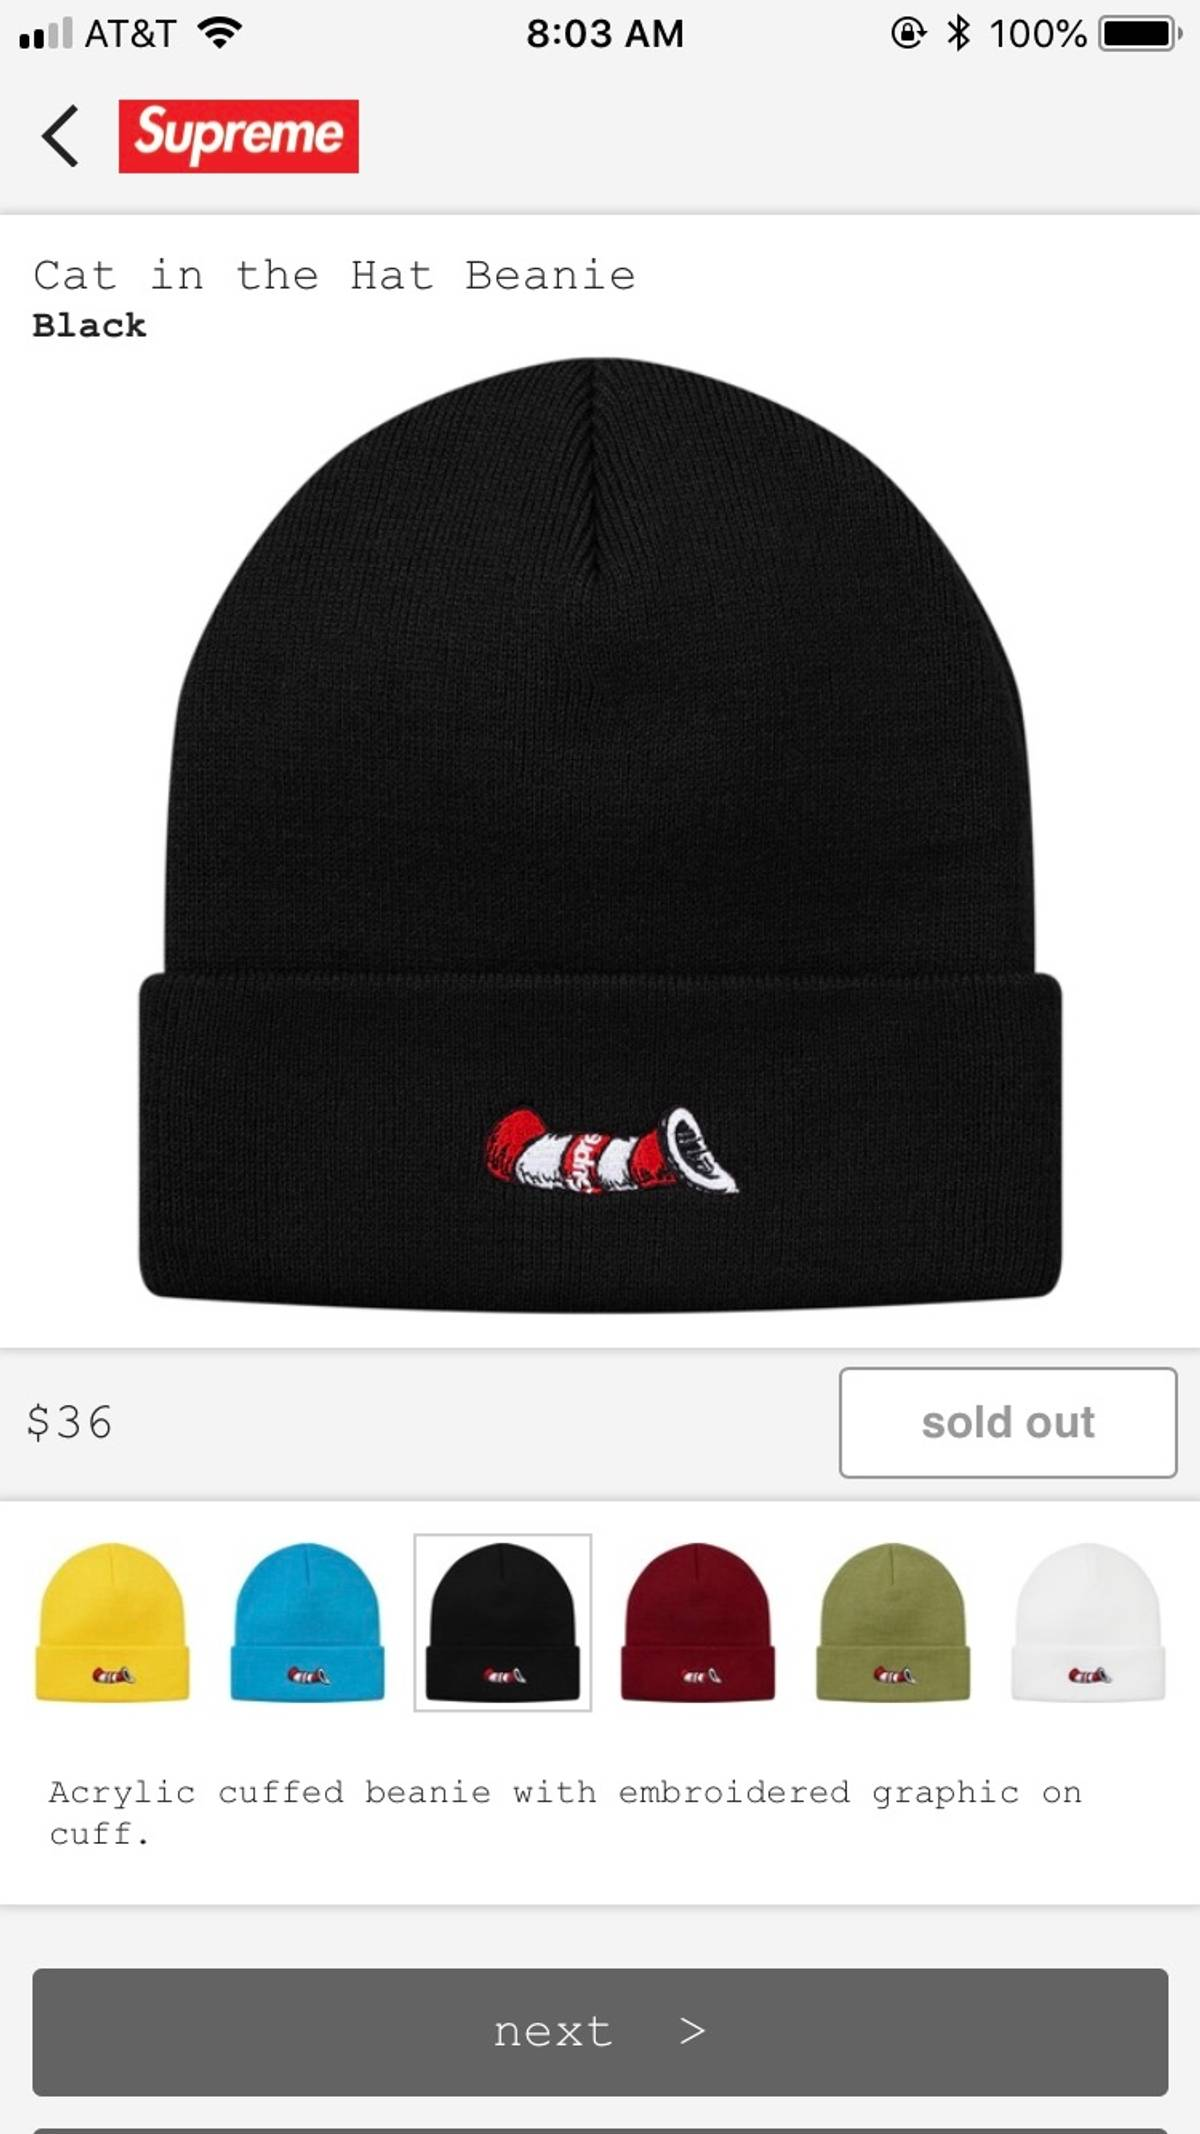 Supreme Supreme Cat In The Hat Beanie Size One Size $57